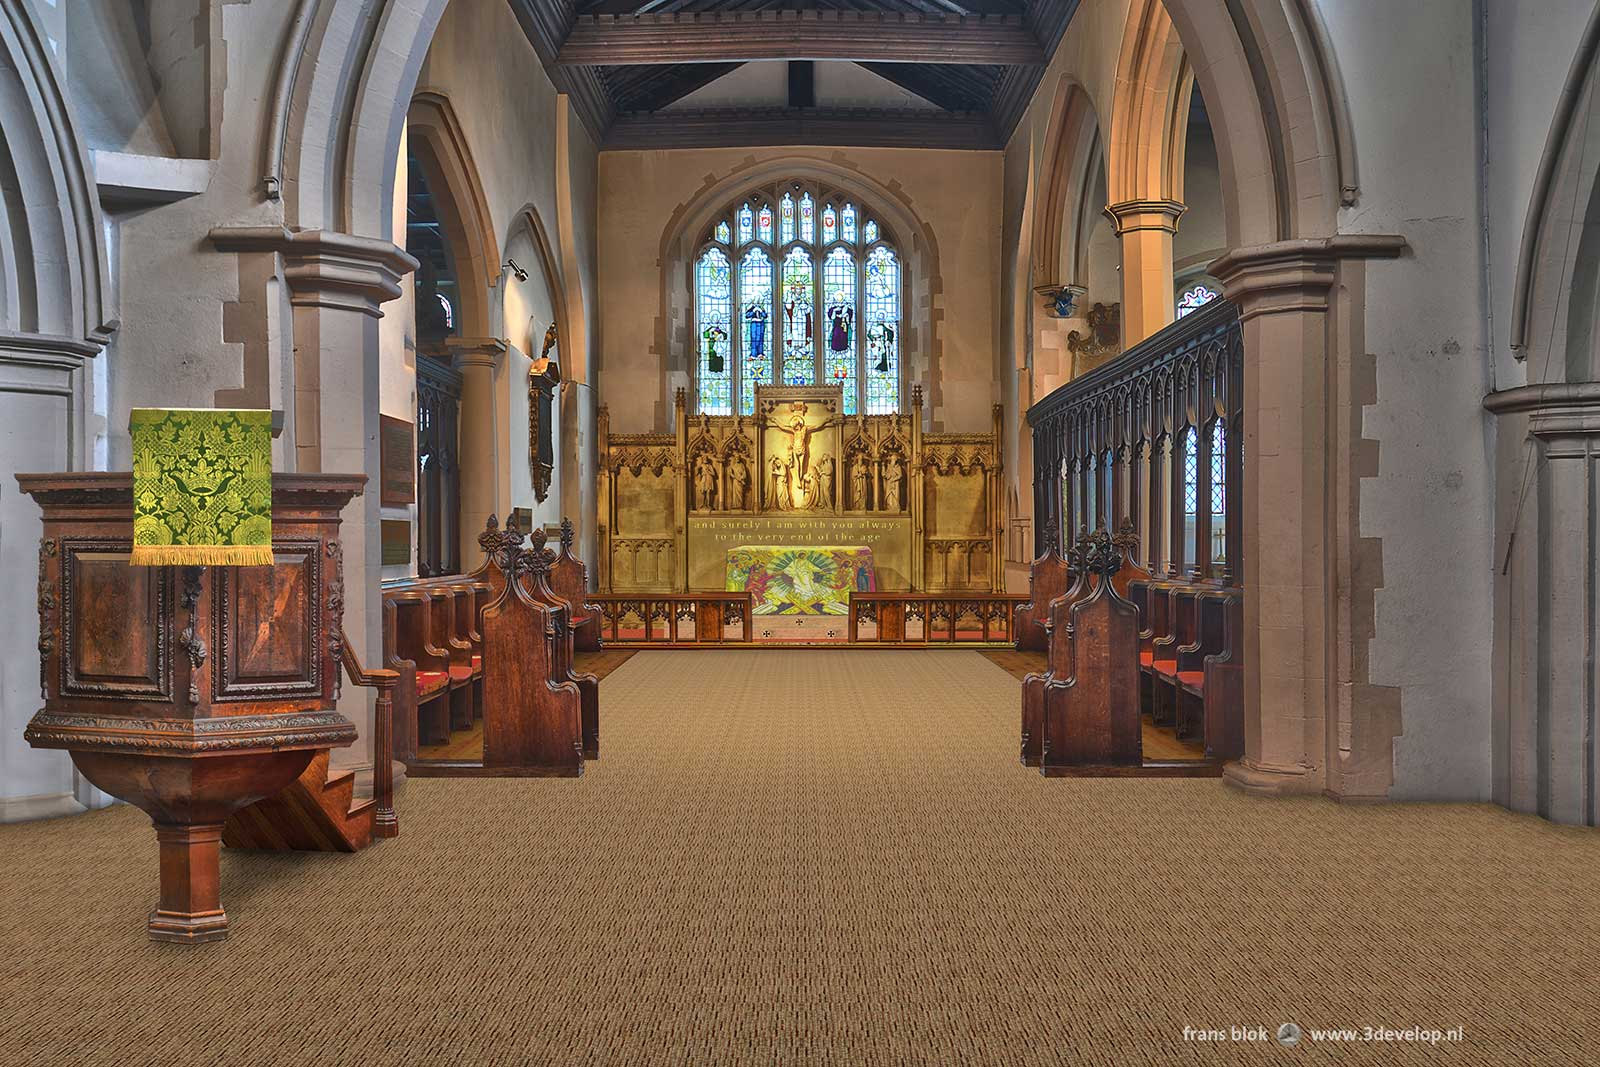 Watford St.Mary's church - re-order of the chancel areA